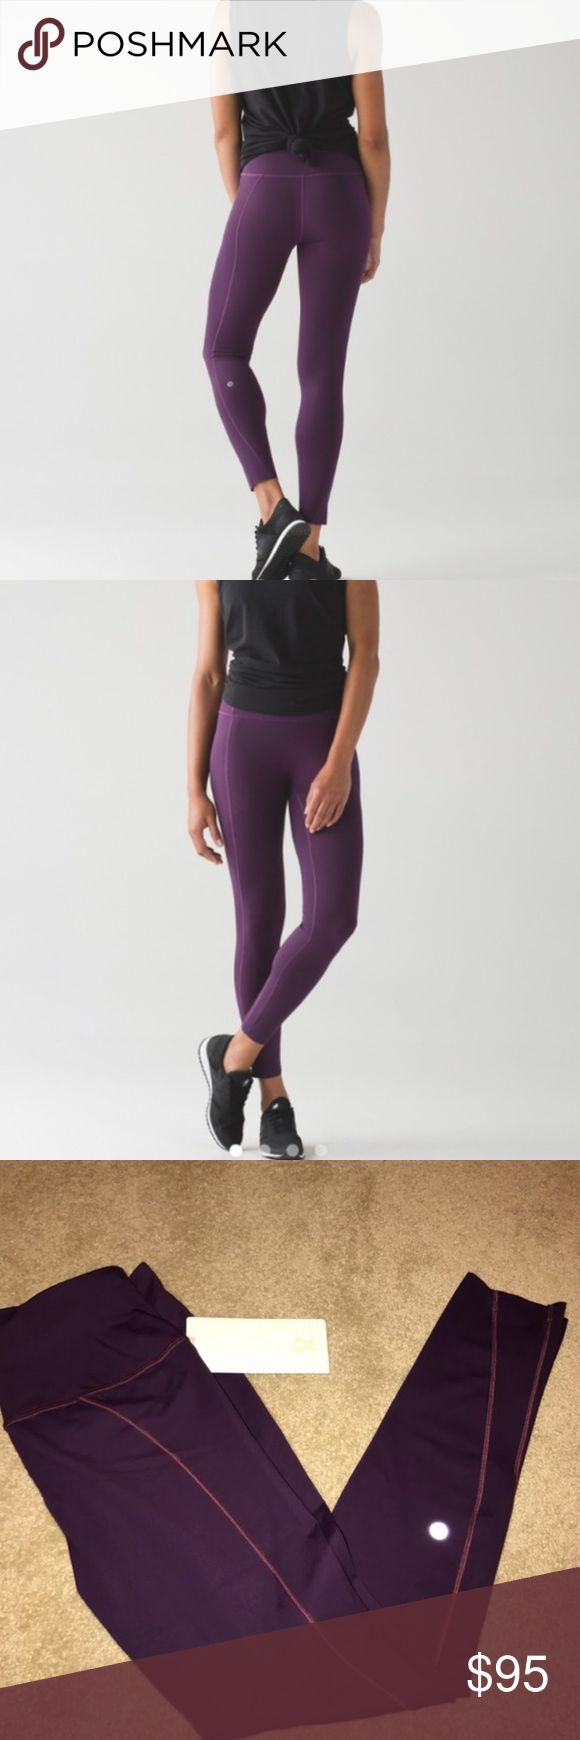 New burgundy/plum pants Gorgeous color and so comfortable!! Naked sensation and high waisted 7/8 tights. New with tag purchased from lulu myself Retails $128 lululemon athletica Pants Leggings